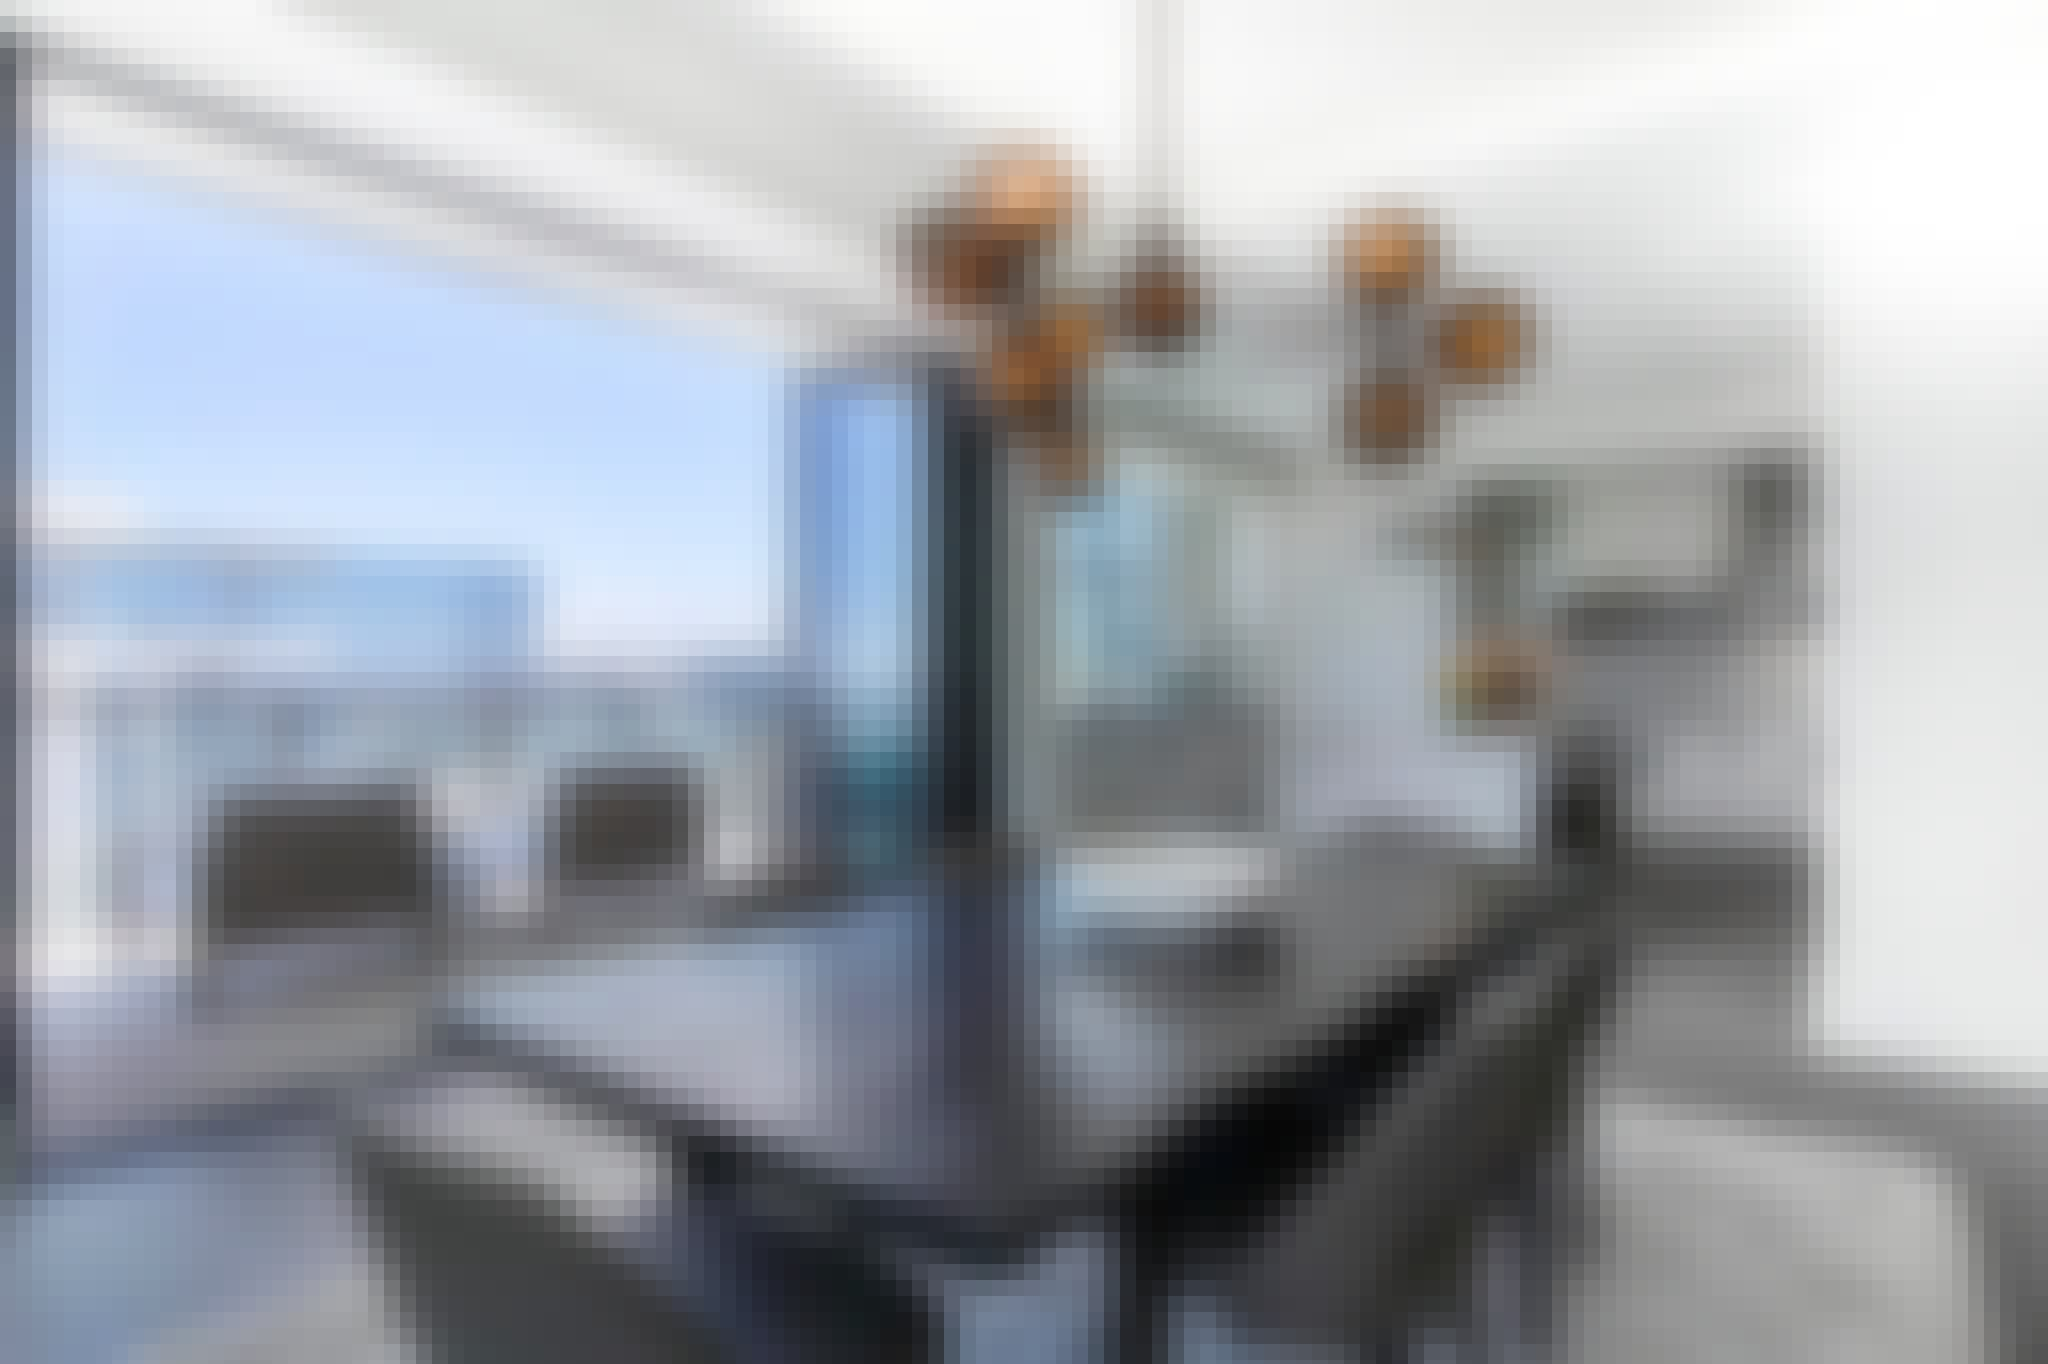 residential glass walls in a highrise condo